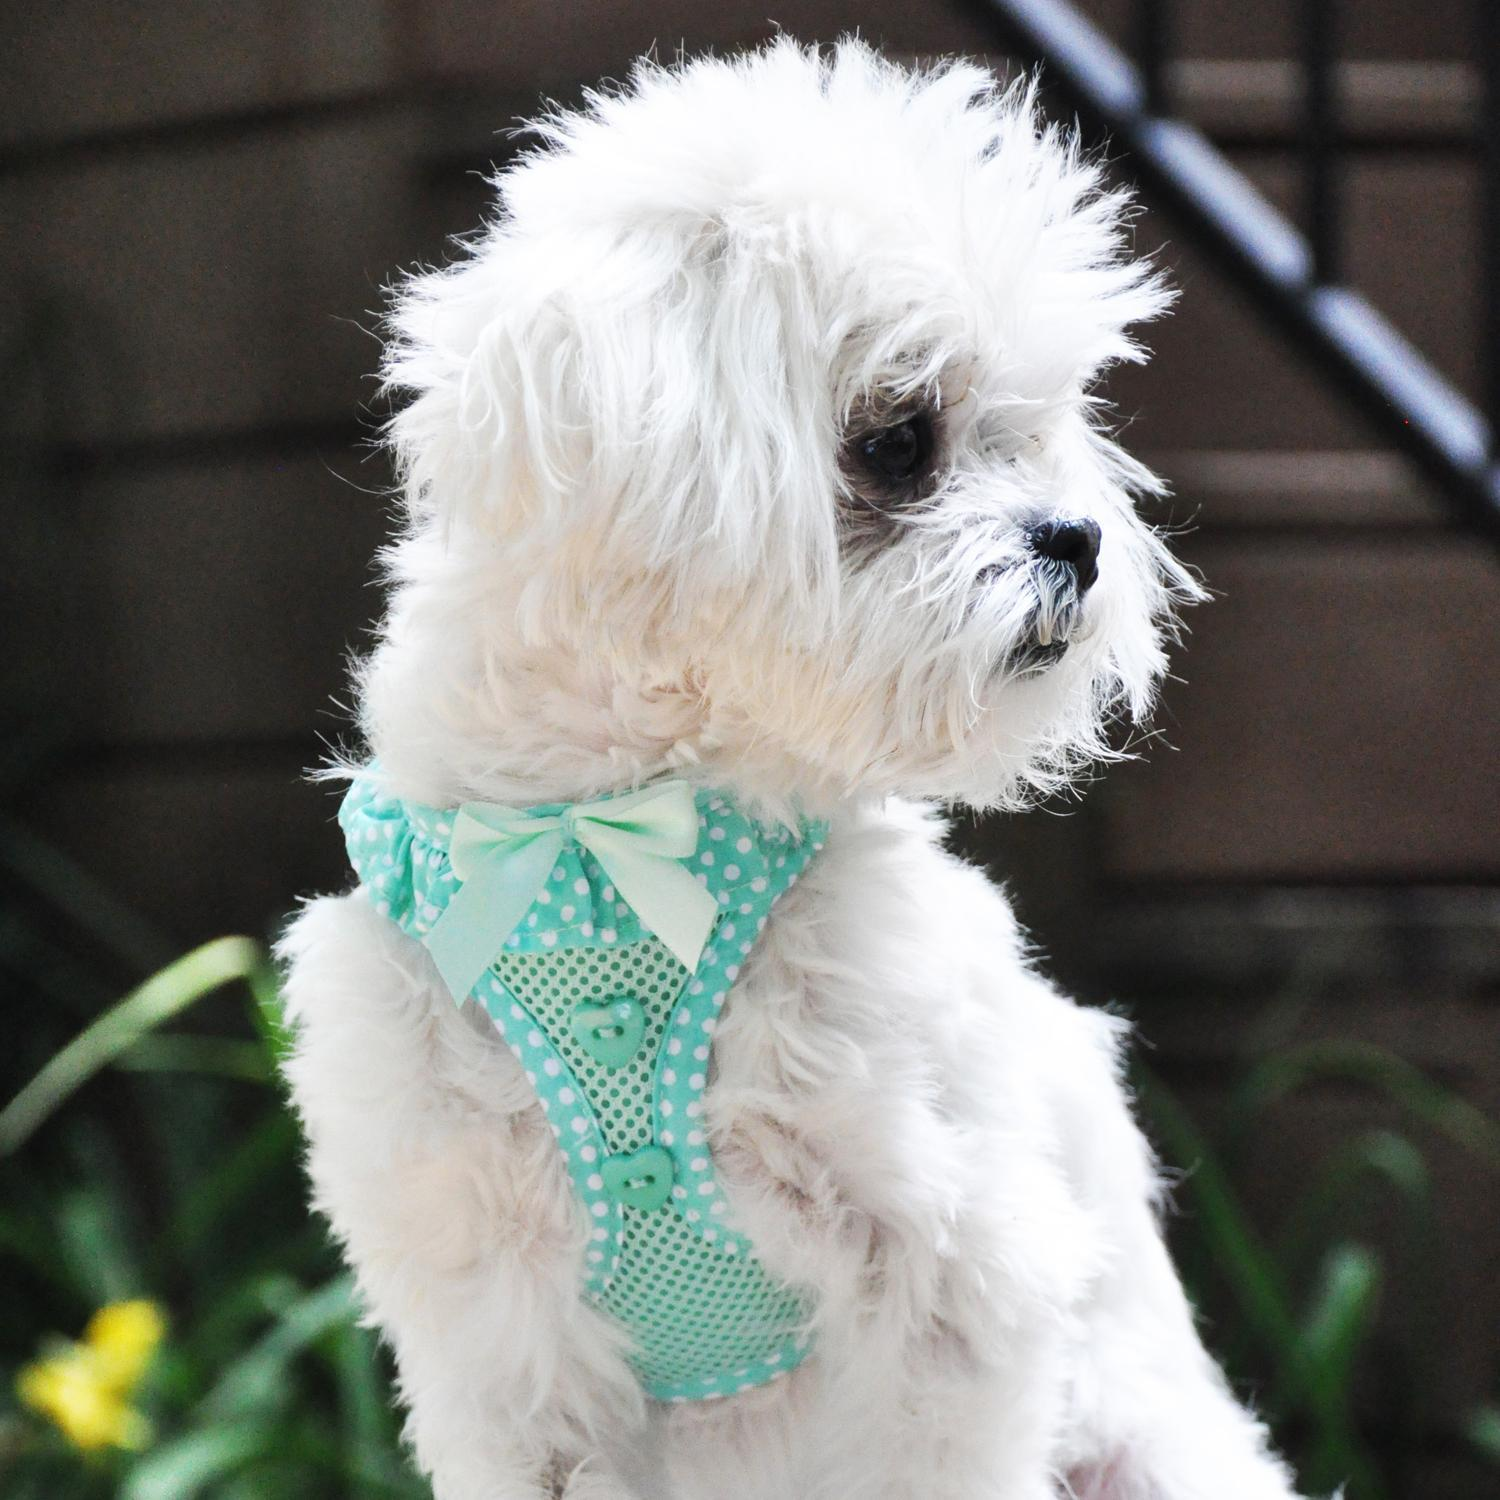 dog in teal mesh harness